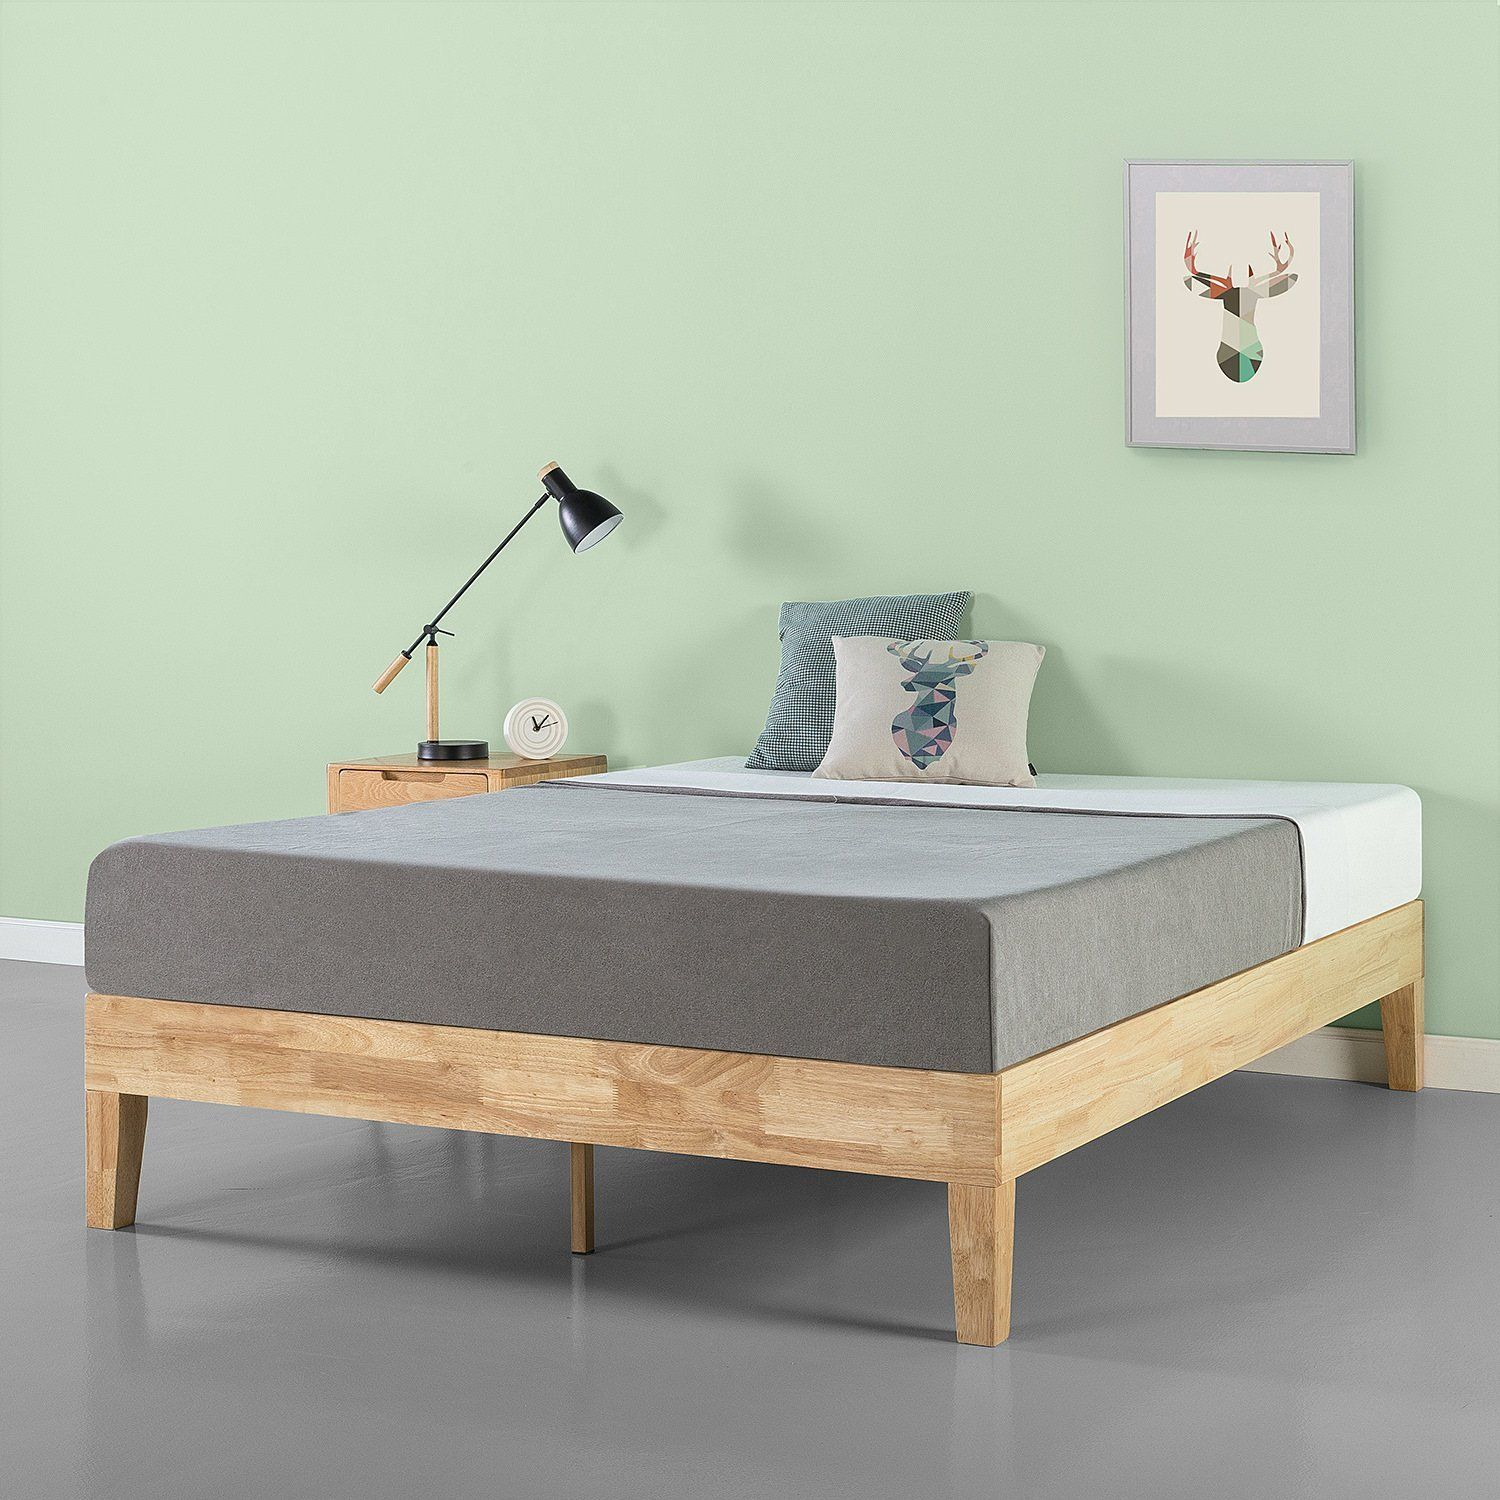 189 Amazon Queen Bed Frame No Headboard Solid Wood Platform Bed Wood Platform Bed Wood Platform Bed Frame